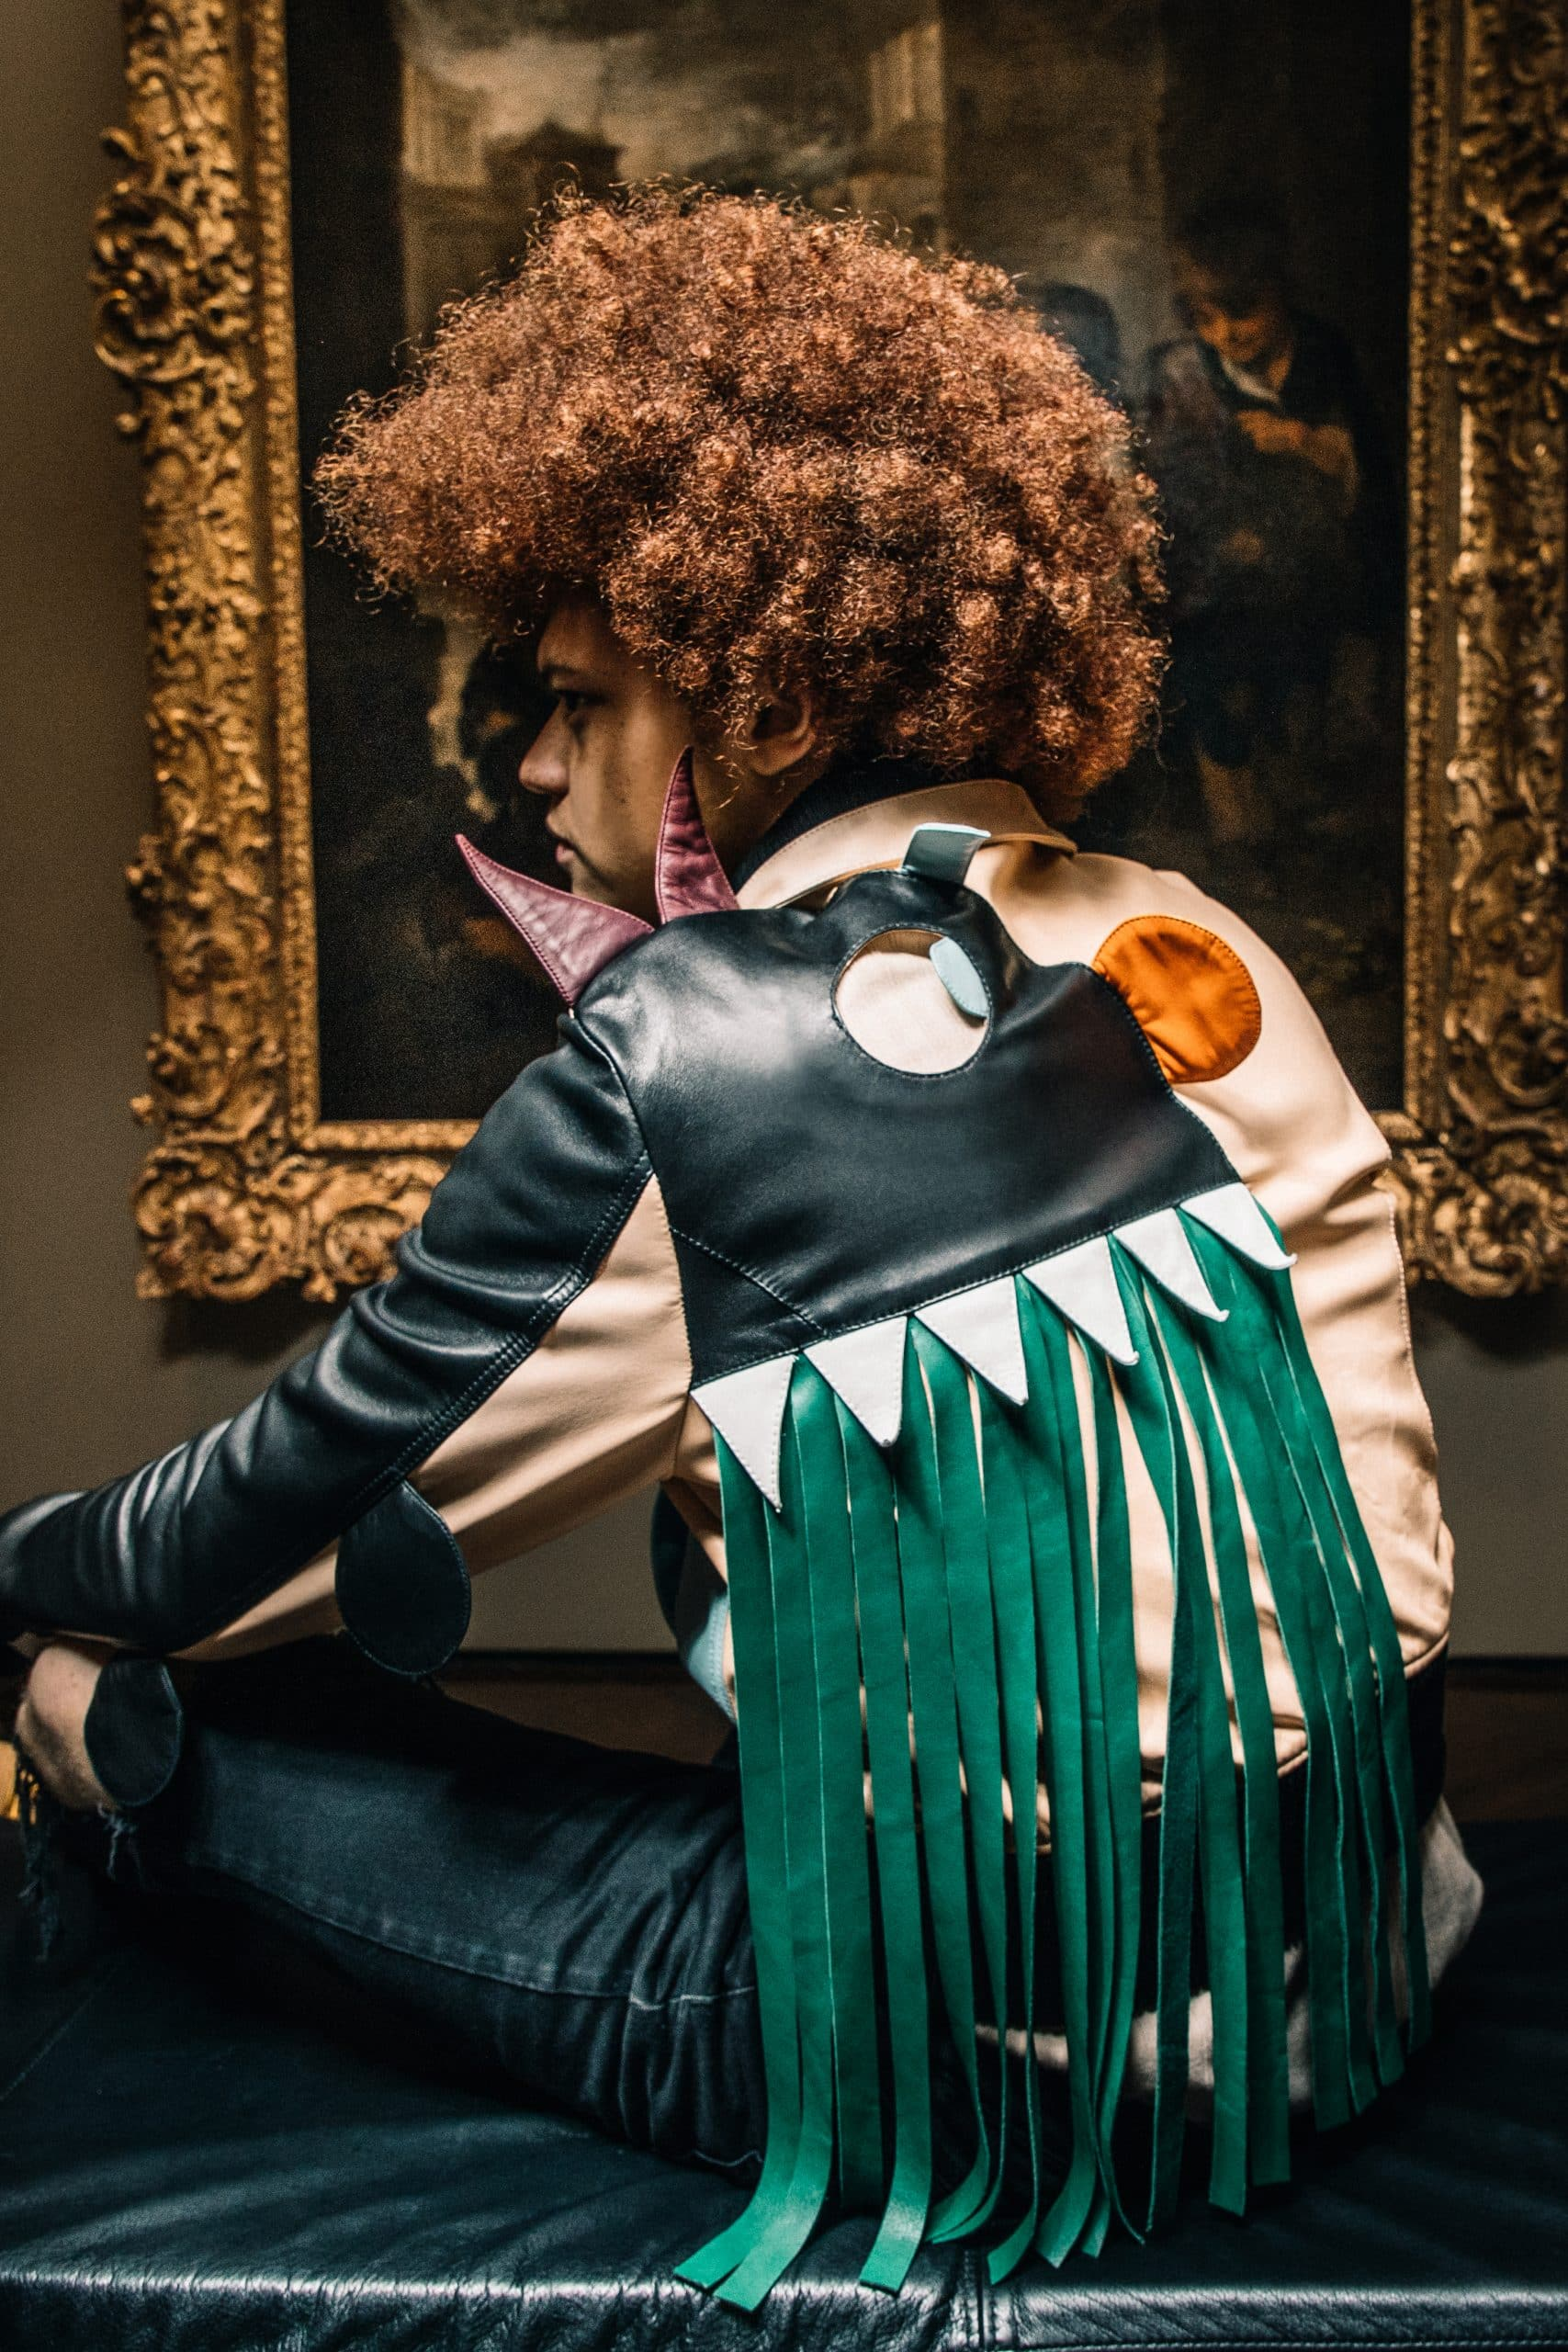 A model in a MONSTER JACKET BY WALTER VAN BEIRENDONCK, offered by Evolution